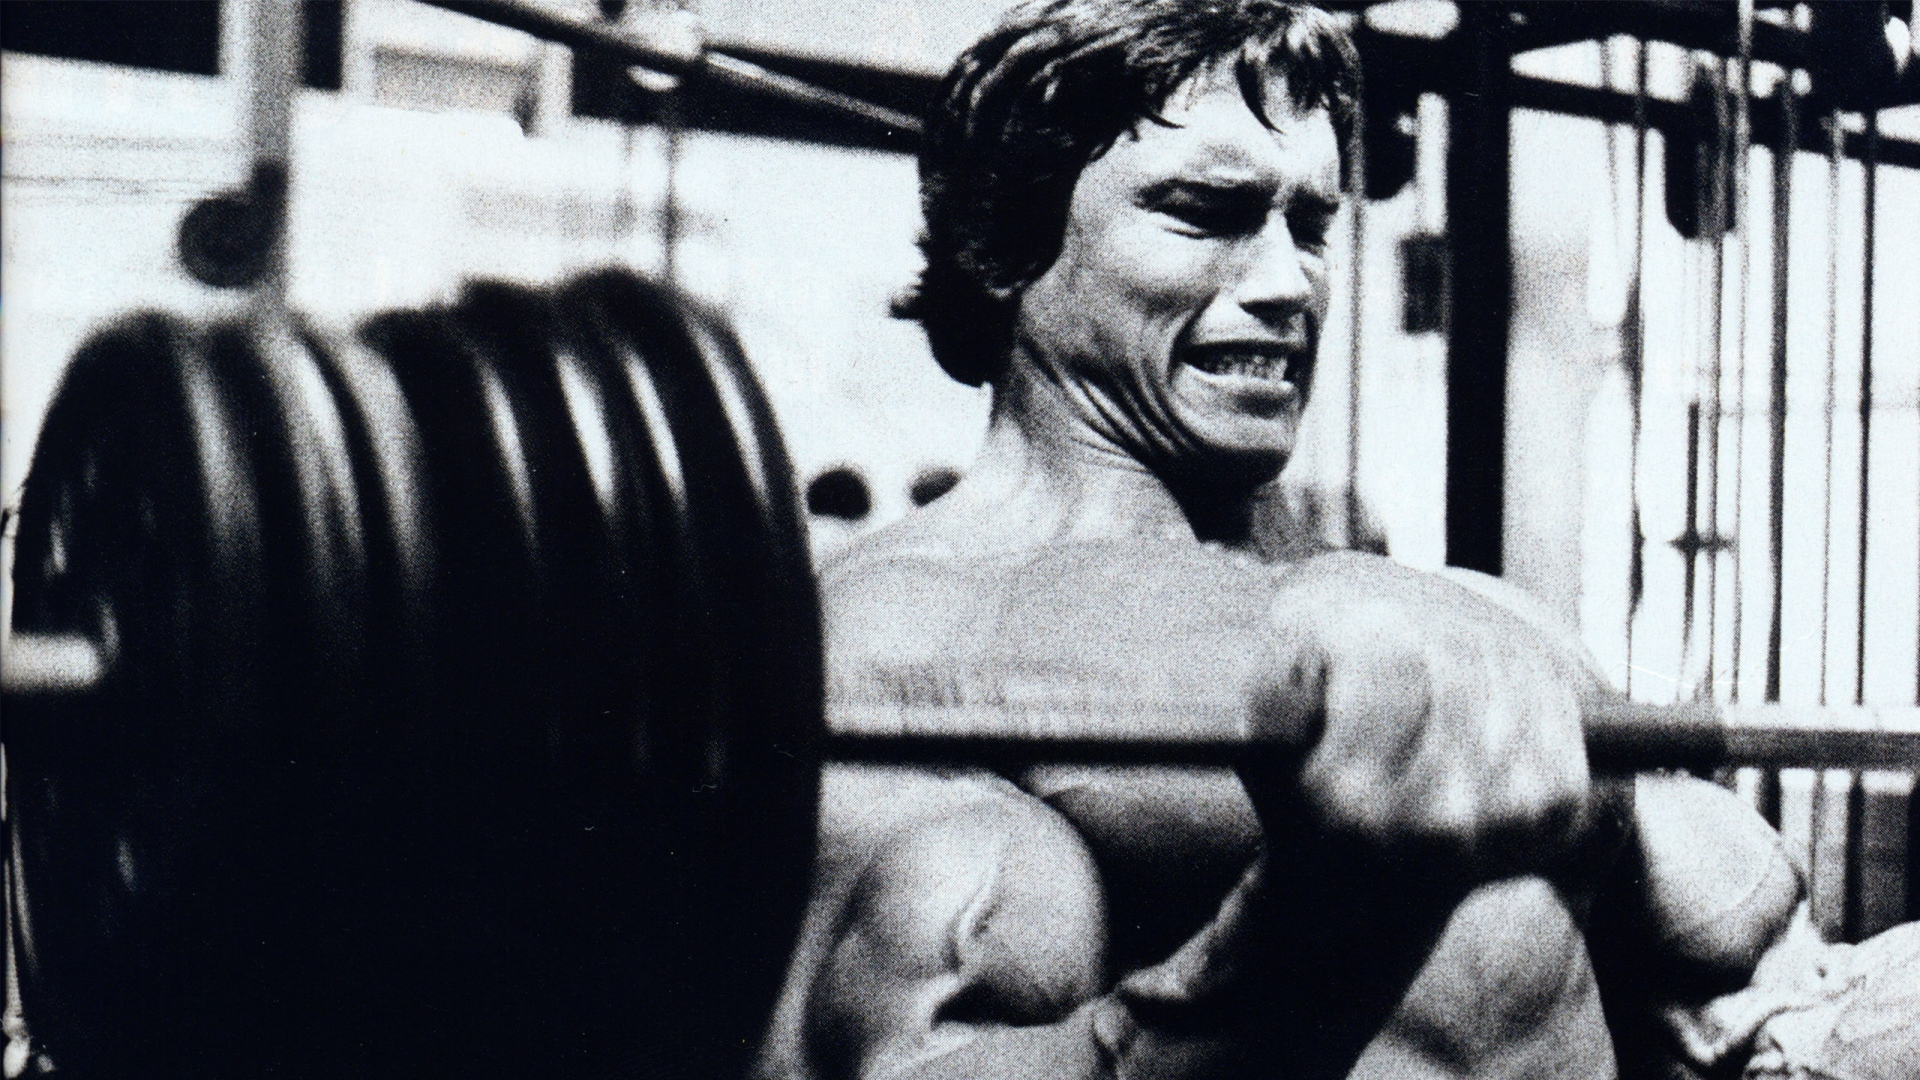 arnold schwarzenegger full hd wallpaper and background image